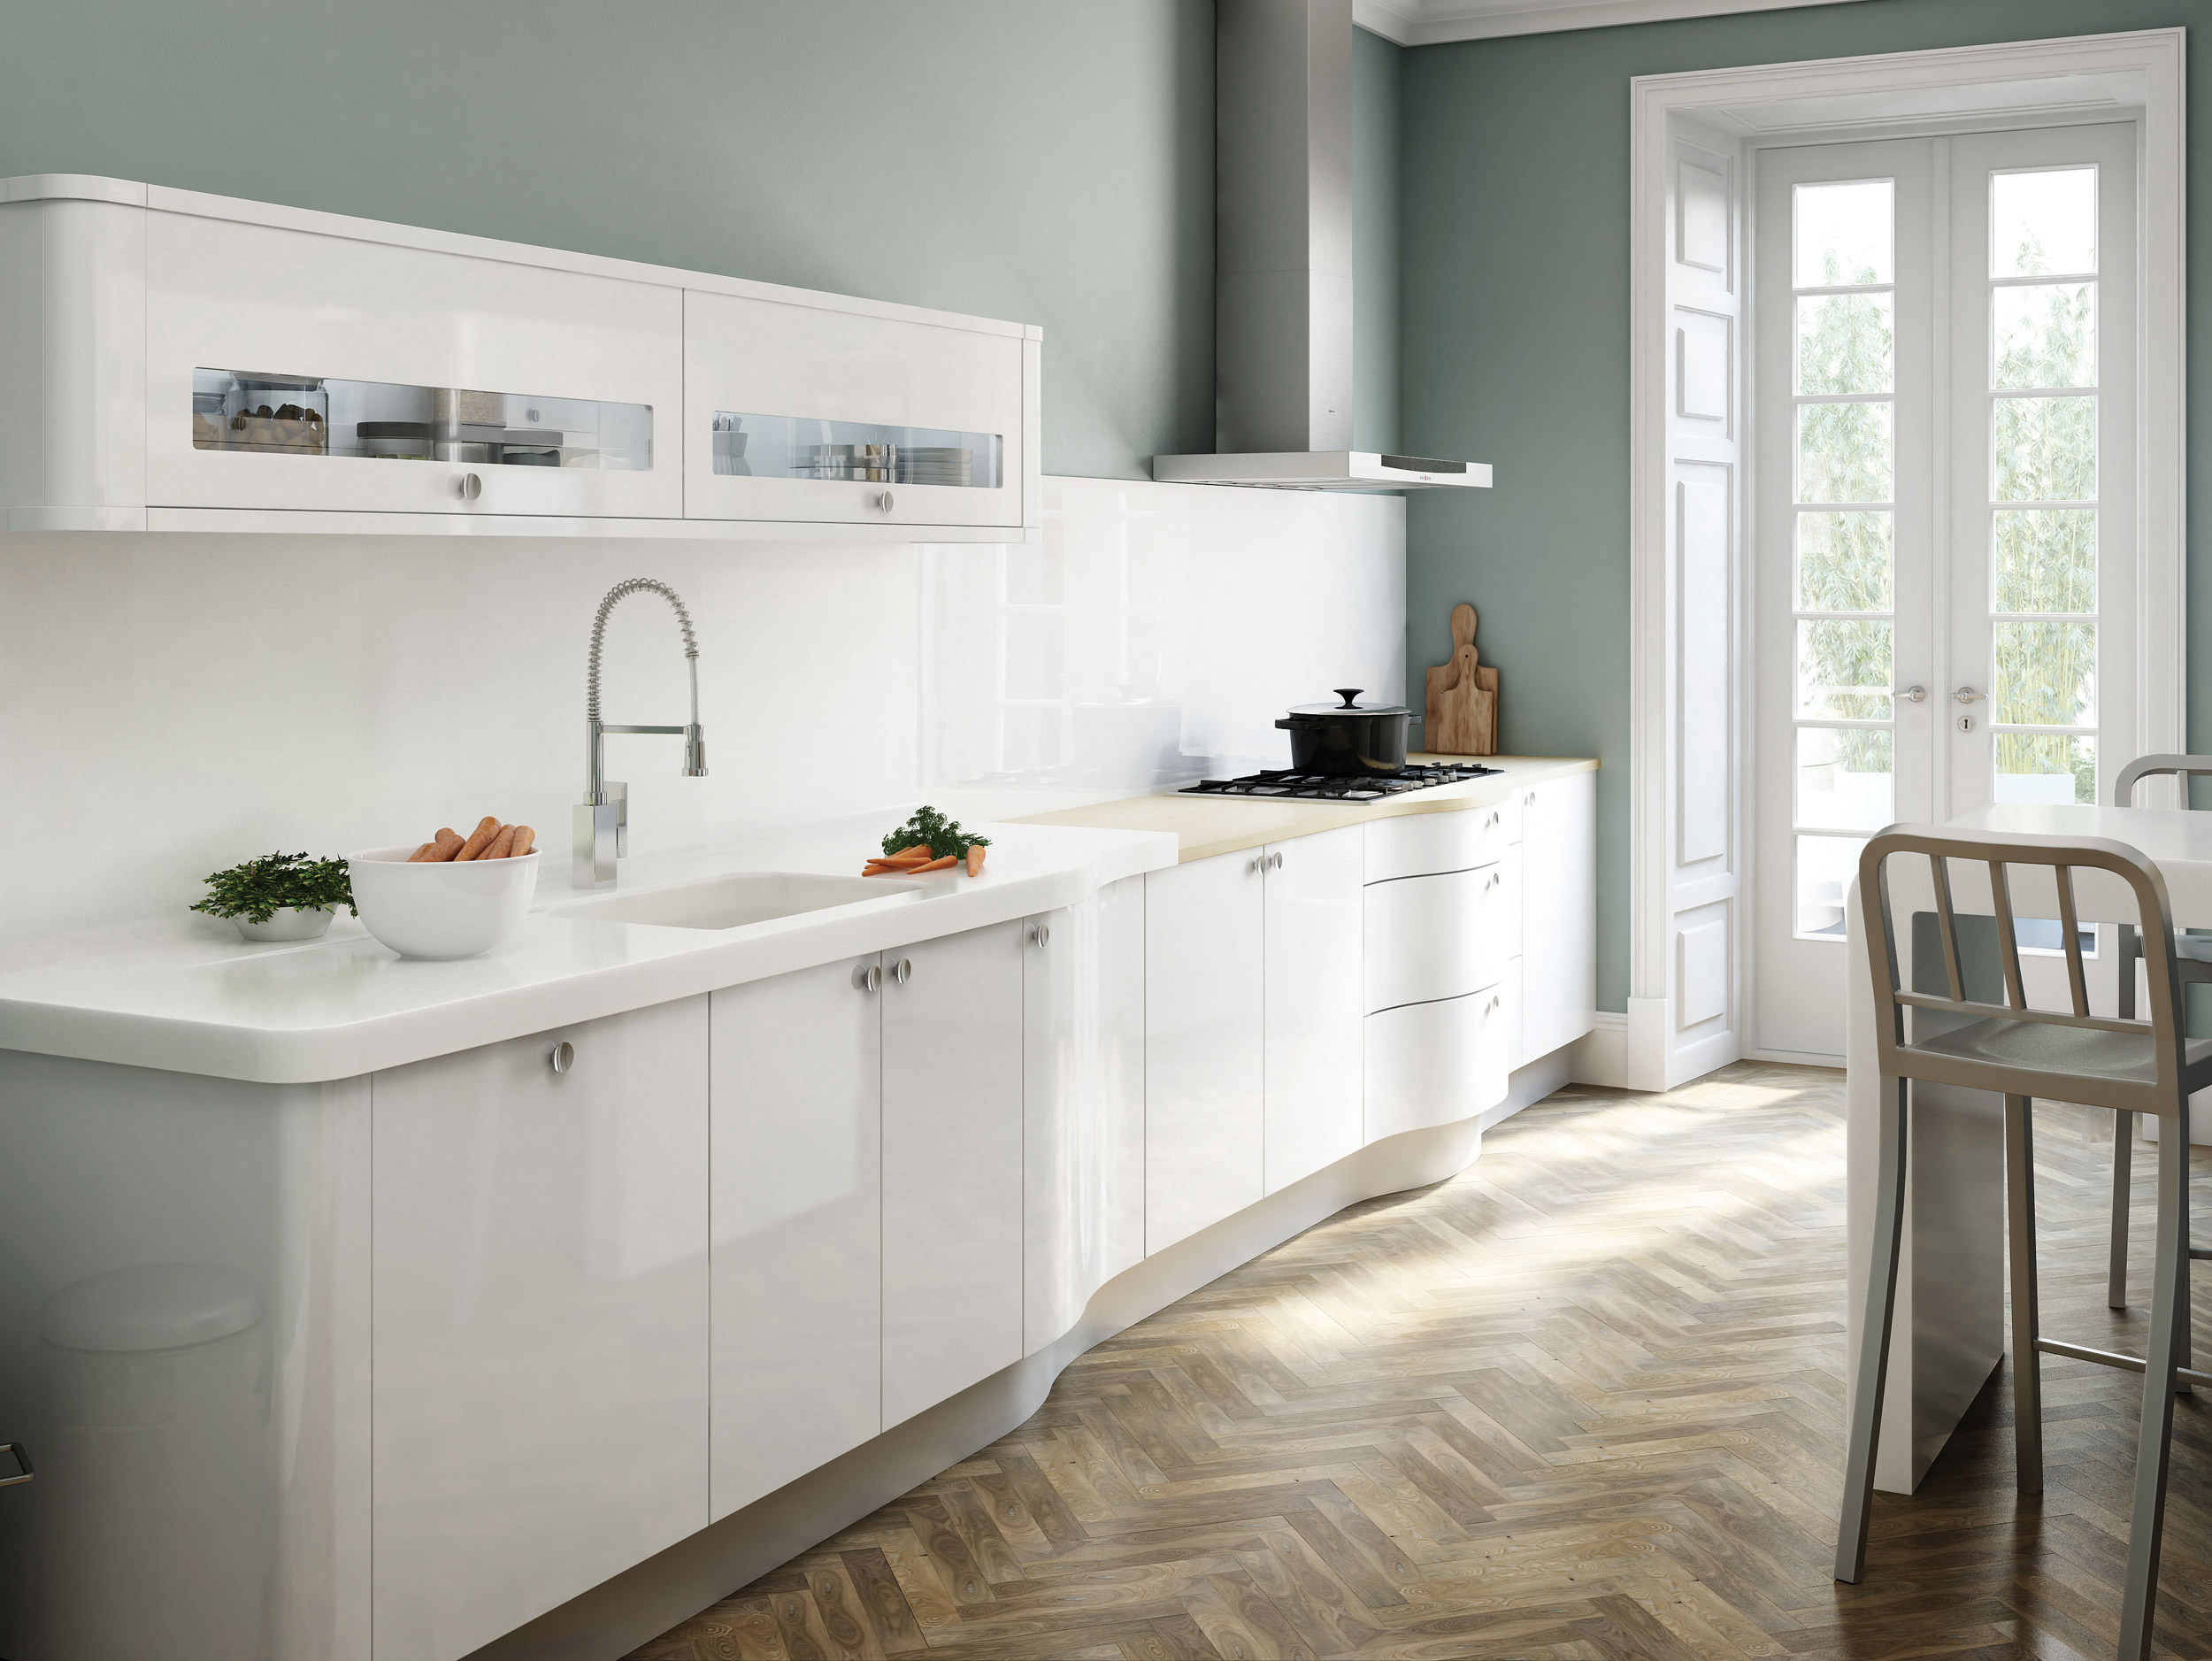 white paint colors for kitchen cabinets kitchen white cabinets Avant White large